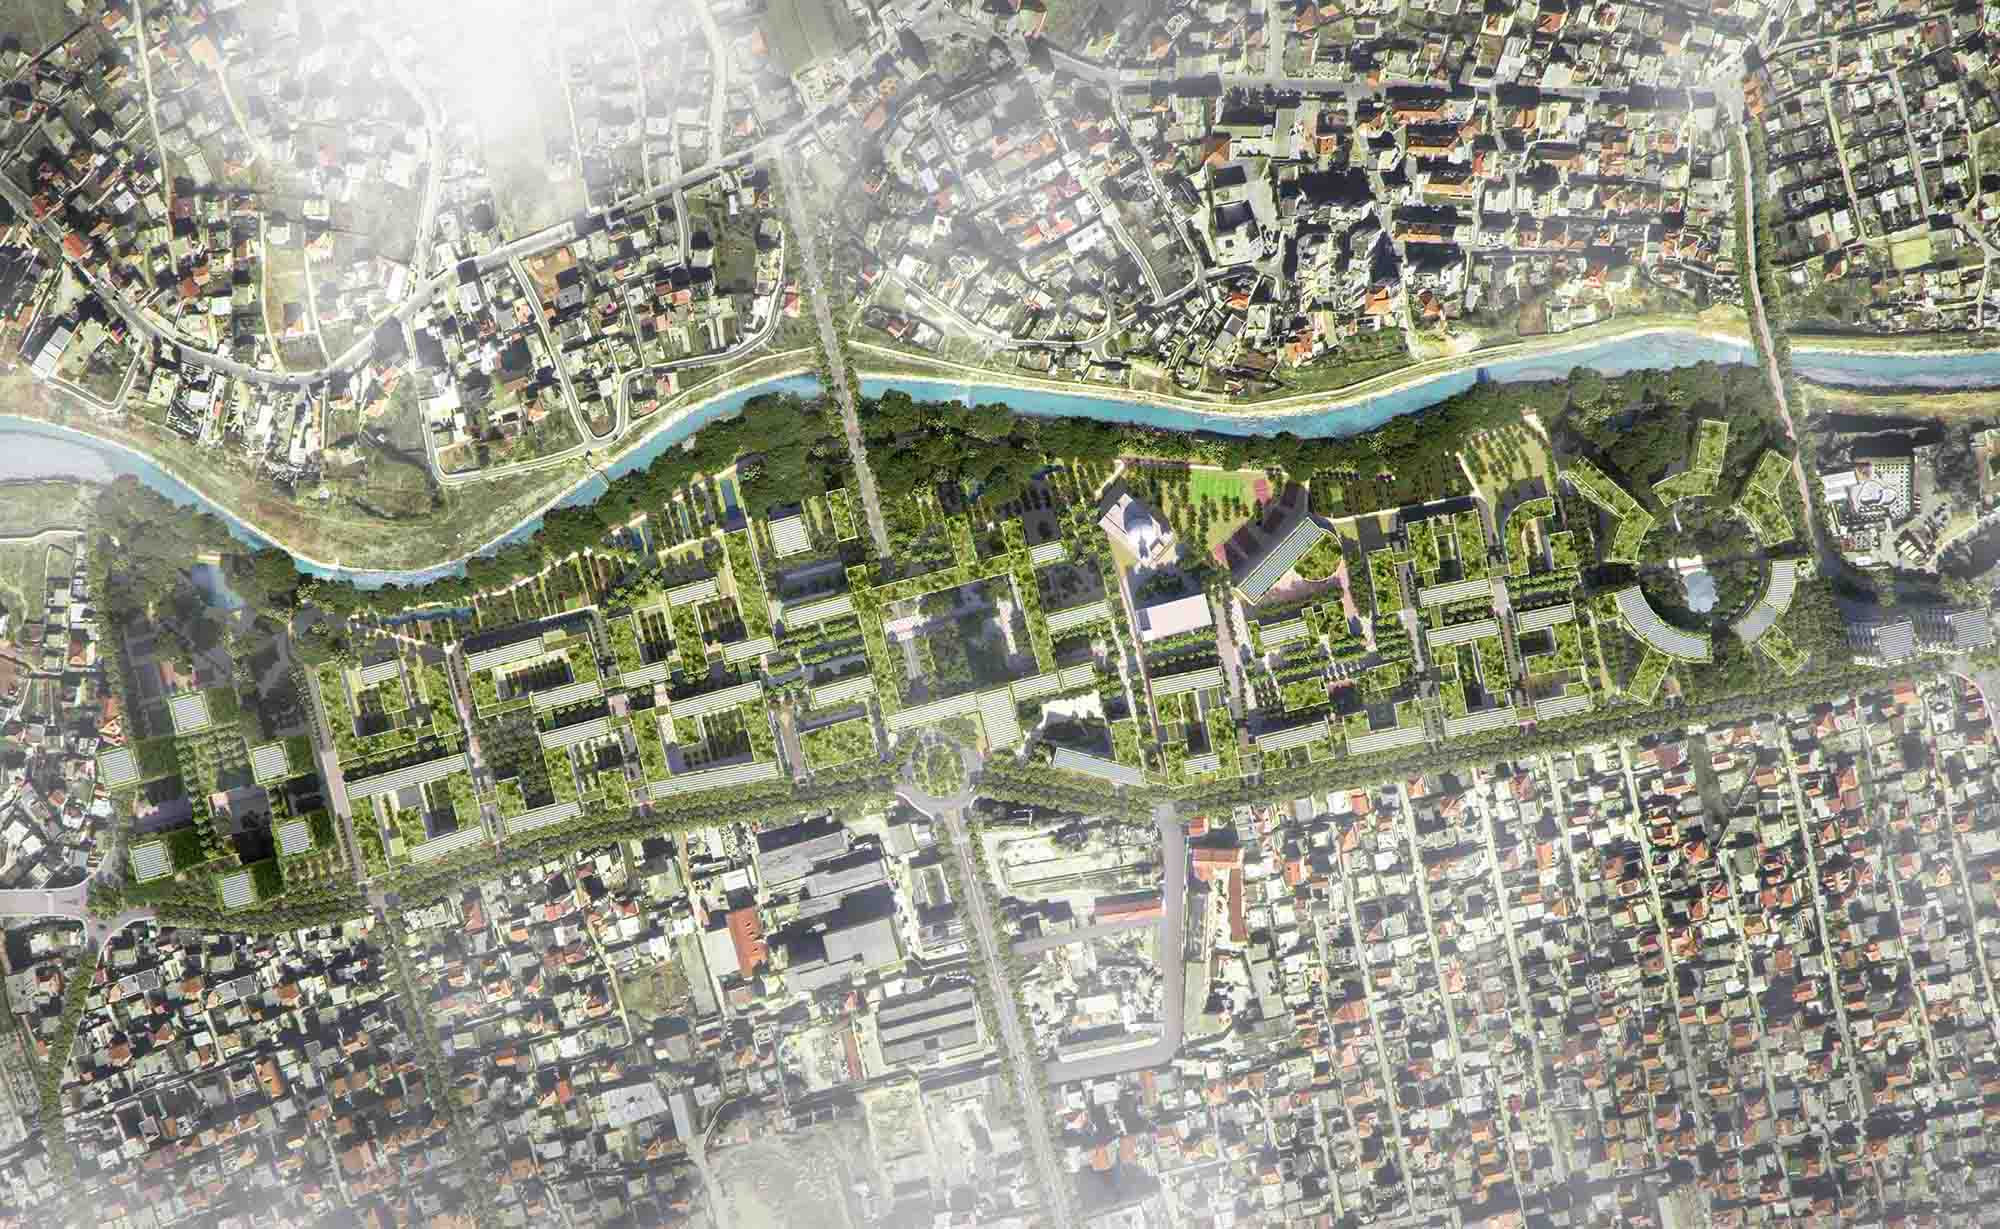 Q&A: Tirana's New Eco-Village Designed to Respond to 21st Century Challenges